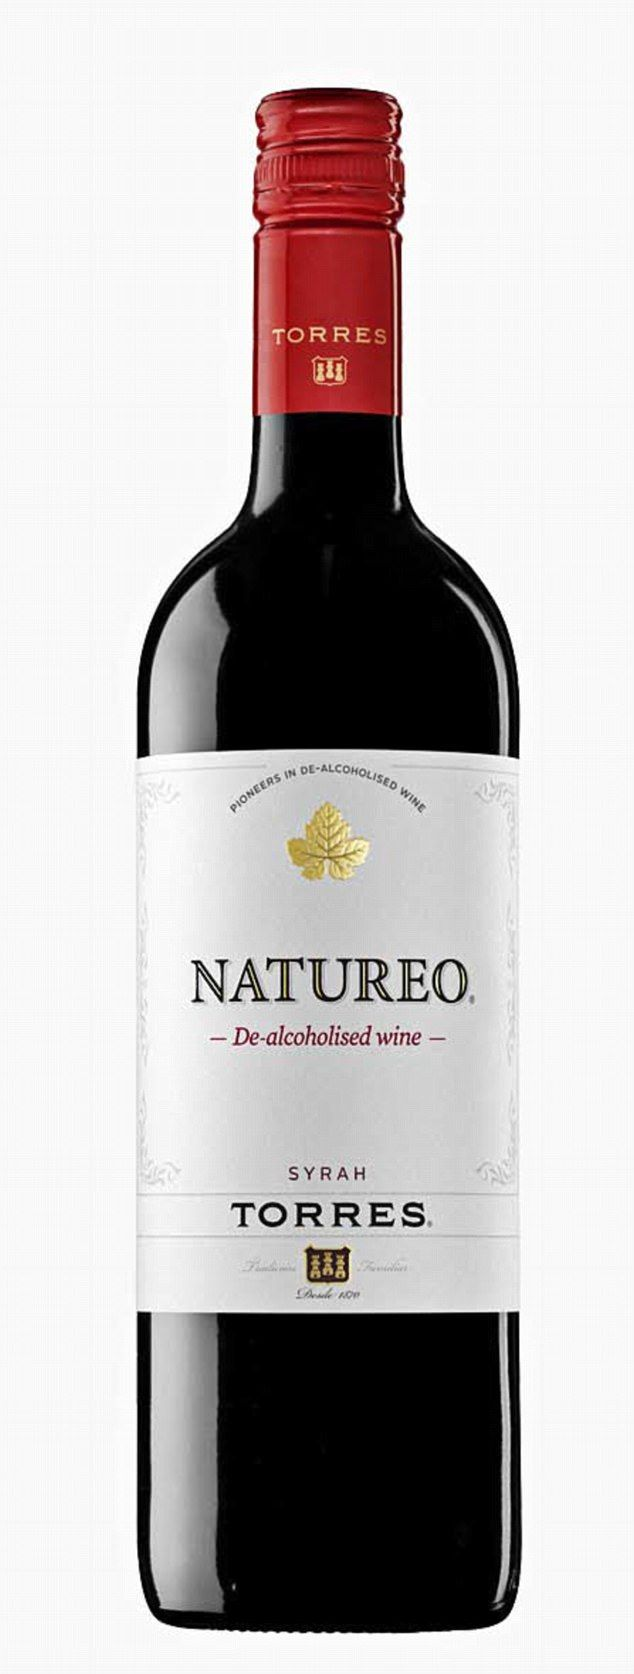 Torres Natureo Red 0.5 per cent, £4.79 (was £5.99), Waitrose. Until now, this juicy Spanish red had little competition when it came to low-alcohol reds